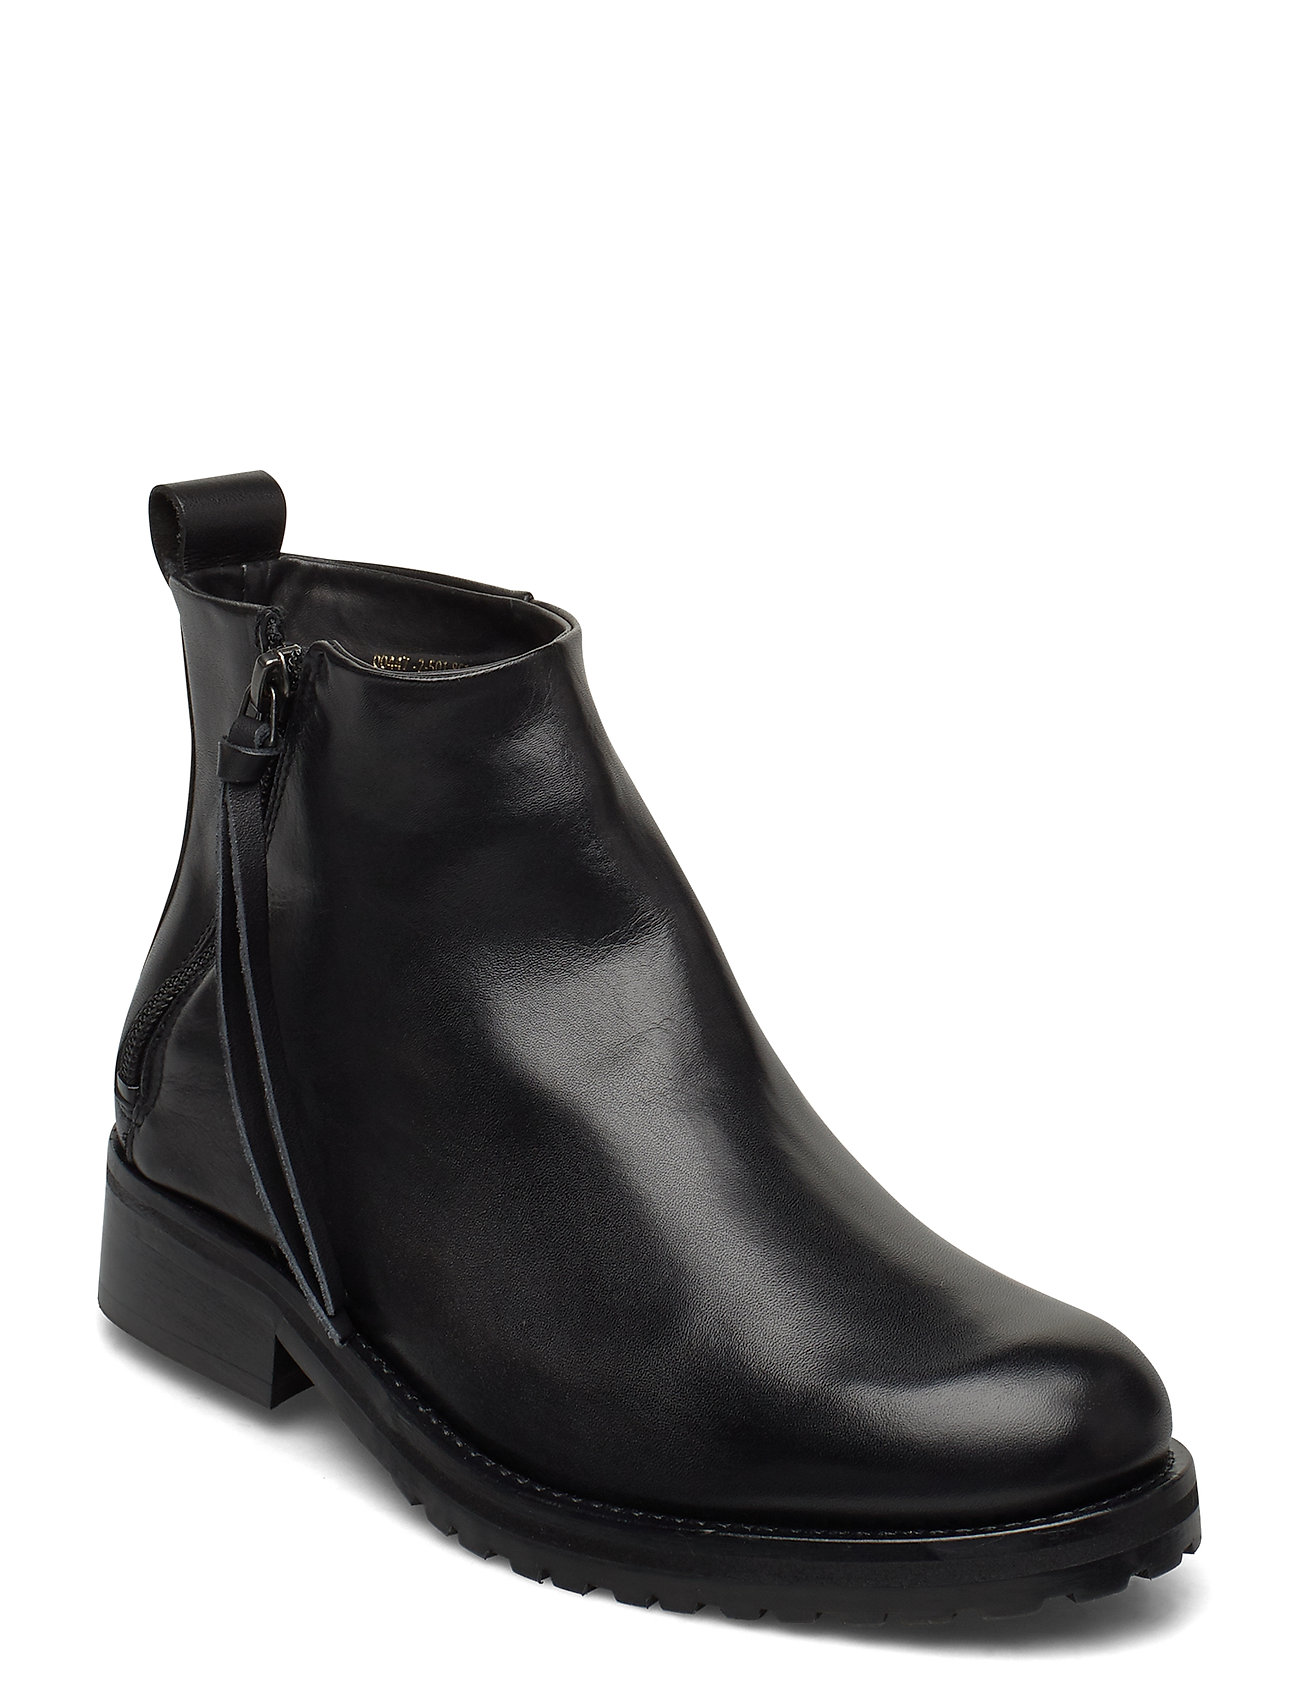 Image of Ave Ankle Boot - Black Shoes Boots Ankle Boots Ankle Boot - Heel Sort Royal RepubliQ (3430126993)